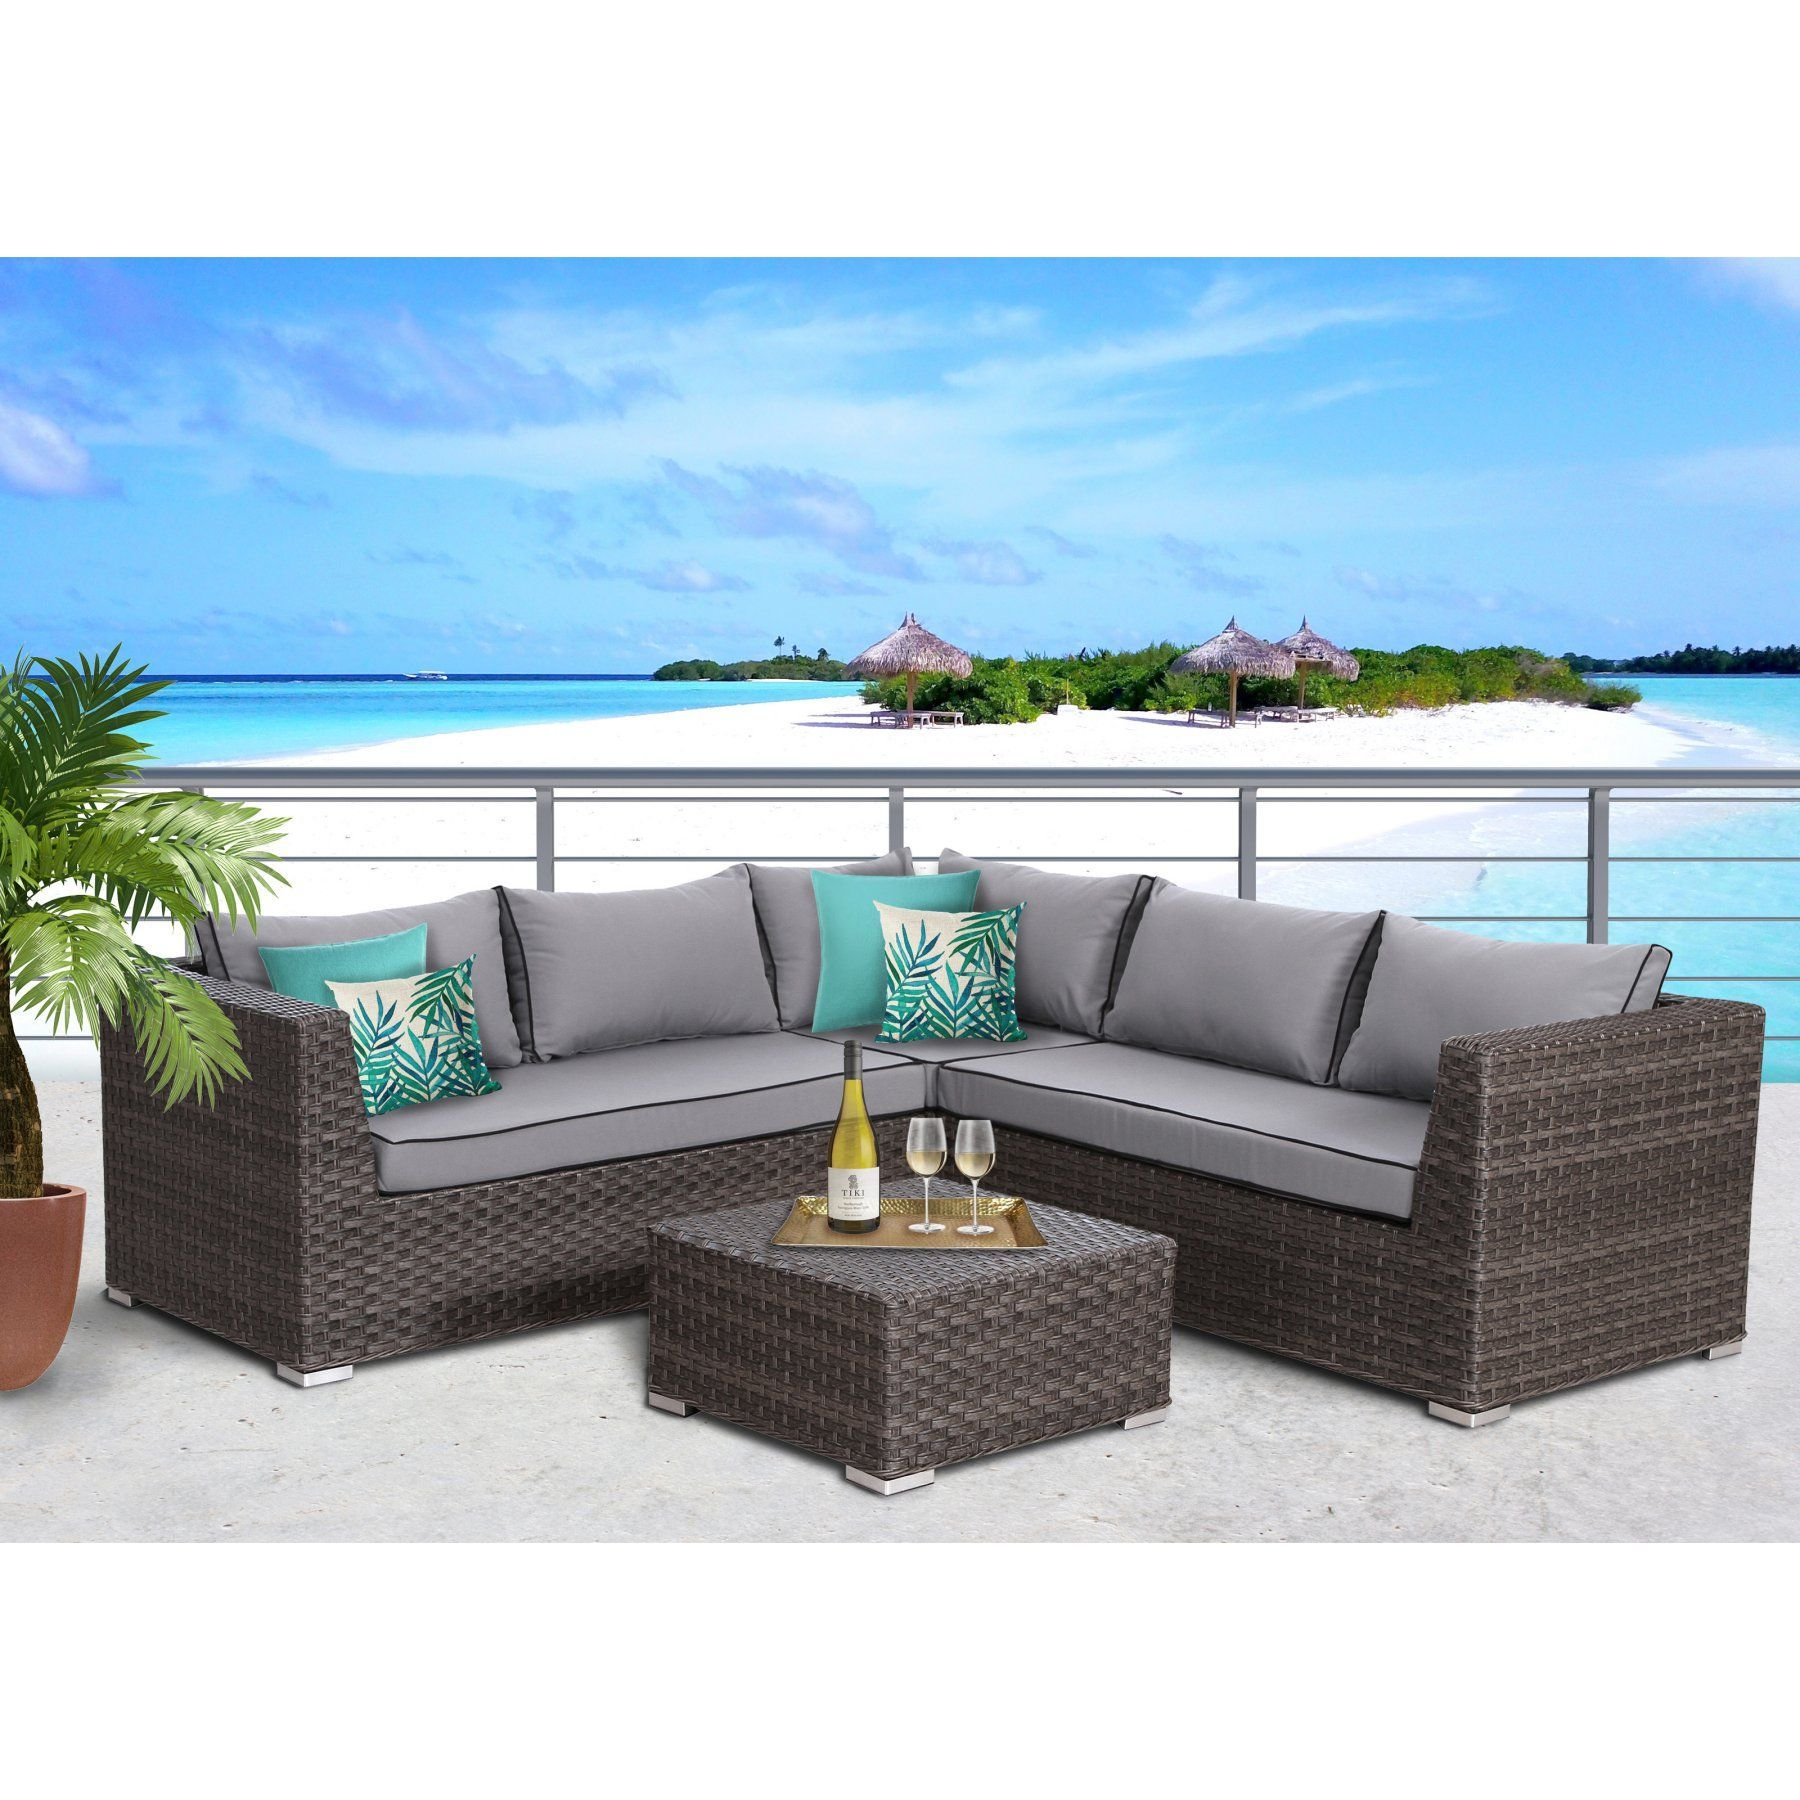 Outdoor SunHaven Marcia All Weather Wicker 4 Piece Patio